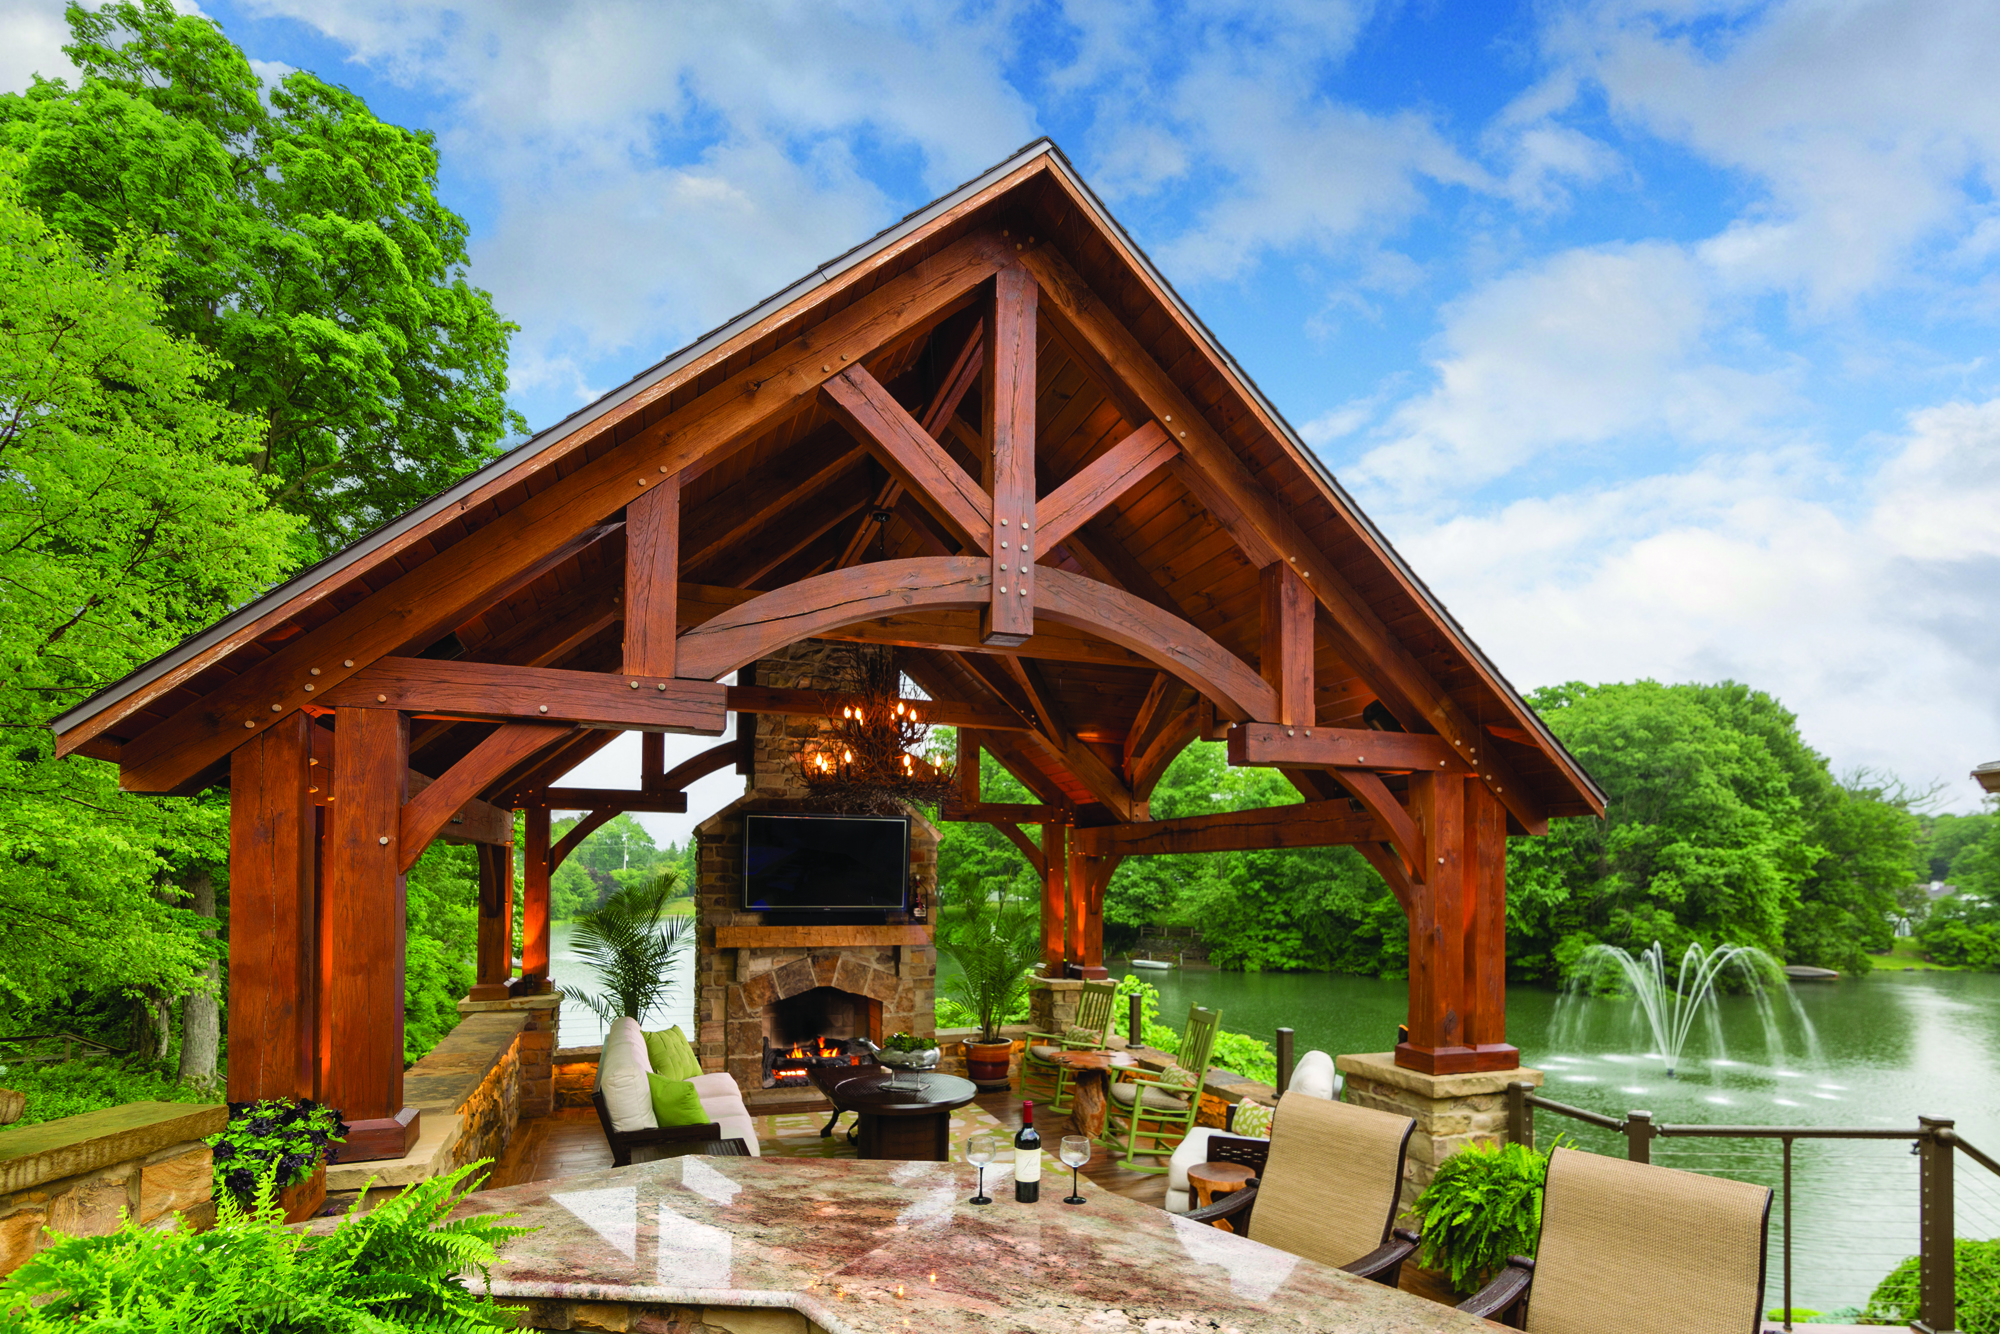 A Timber Frame Pavilion Crafted In The Amish Tradition